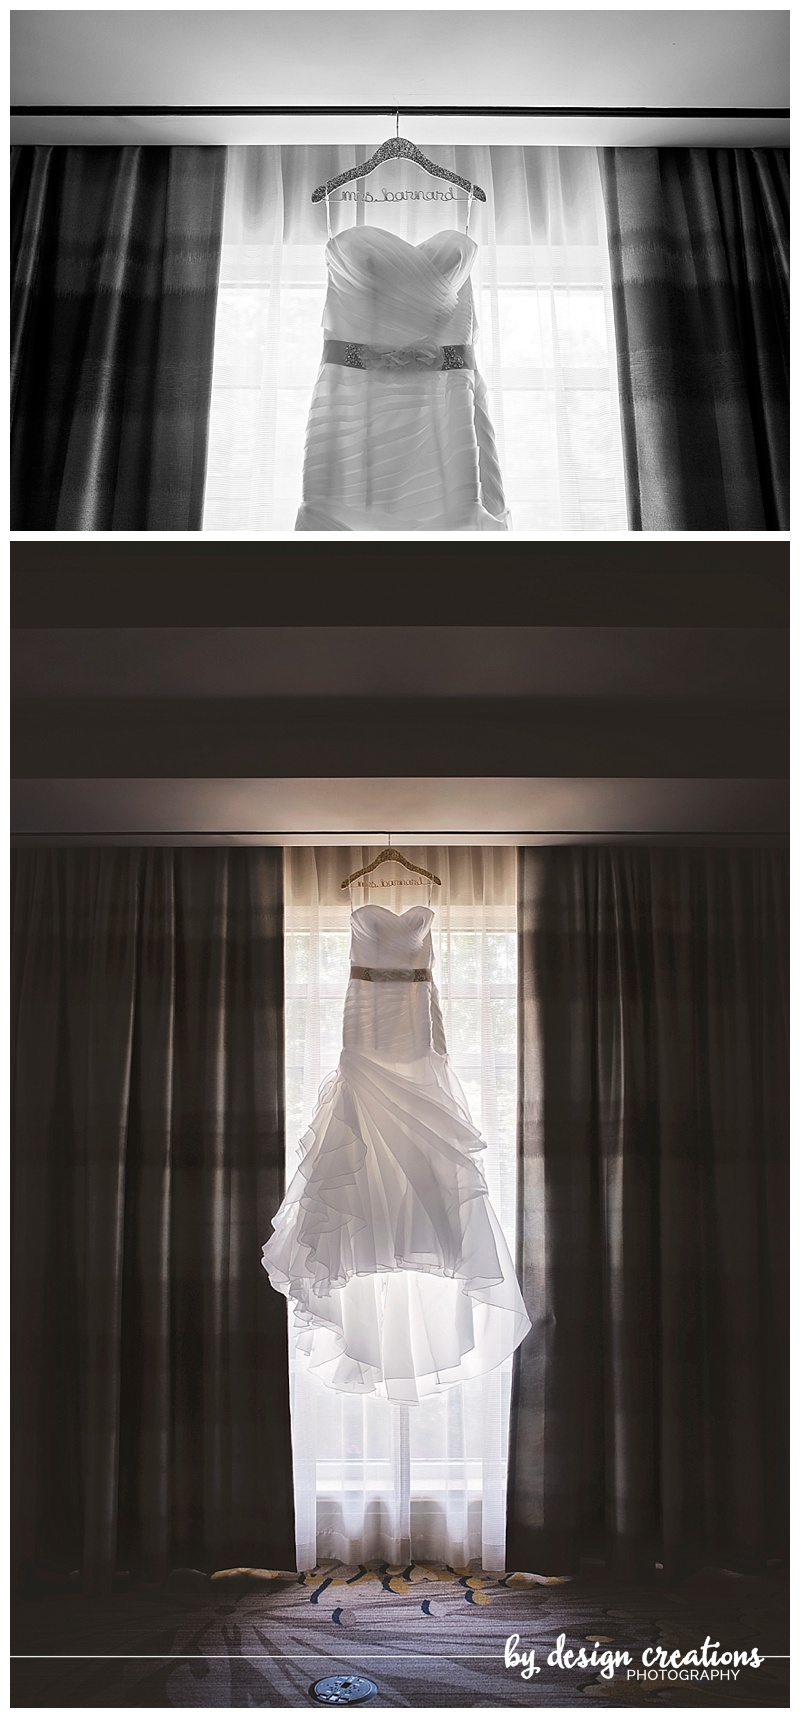 WEDDING DRESS and SUIT SHOTS